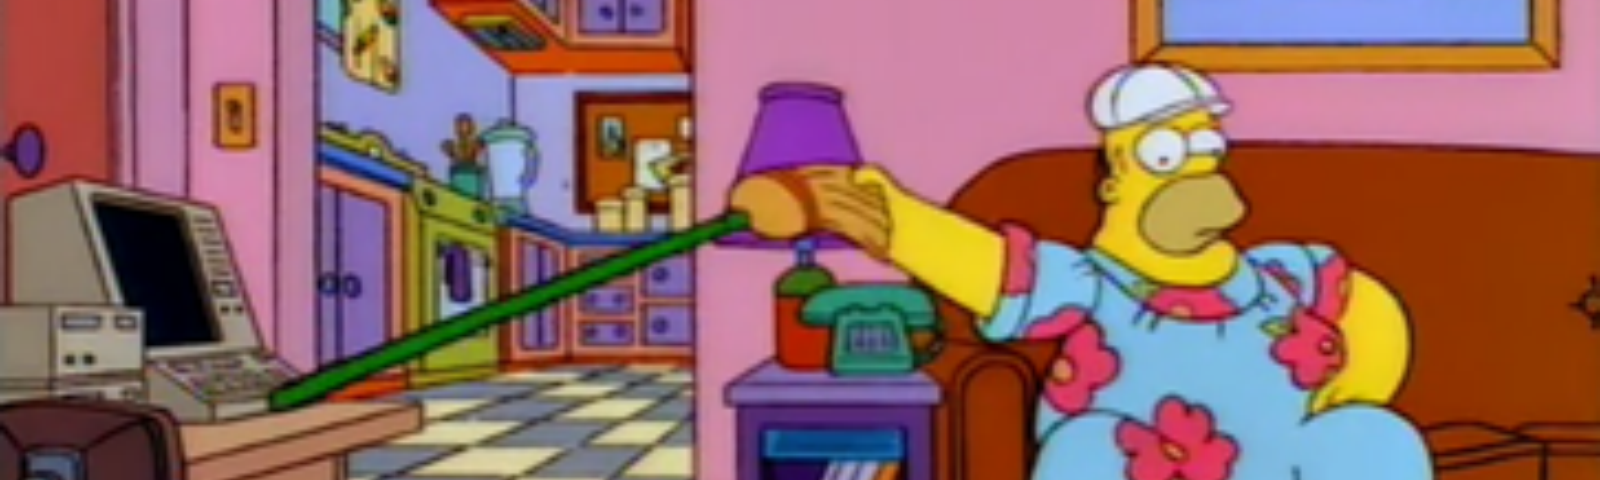 Homer Simpson watching TV while using a broomstick to hit his keyboard across the room.